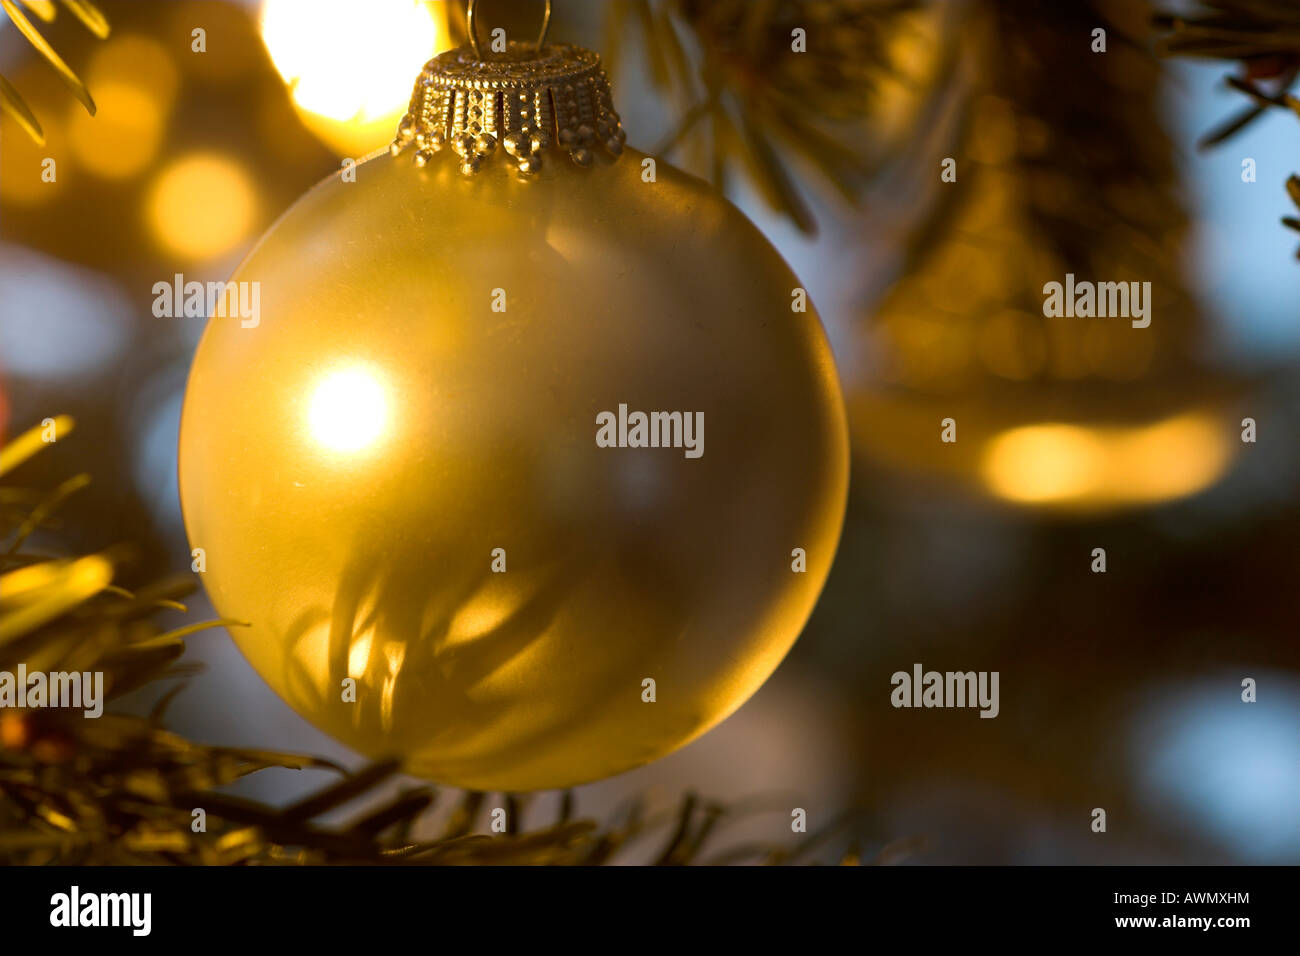 Christmas ornament in tree, Germany, Europe Stock Photo